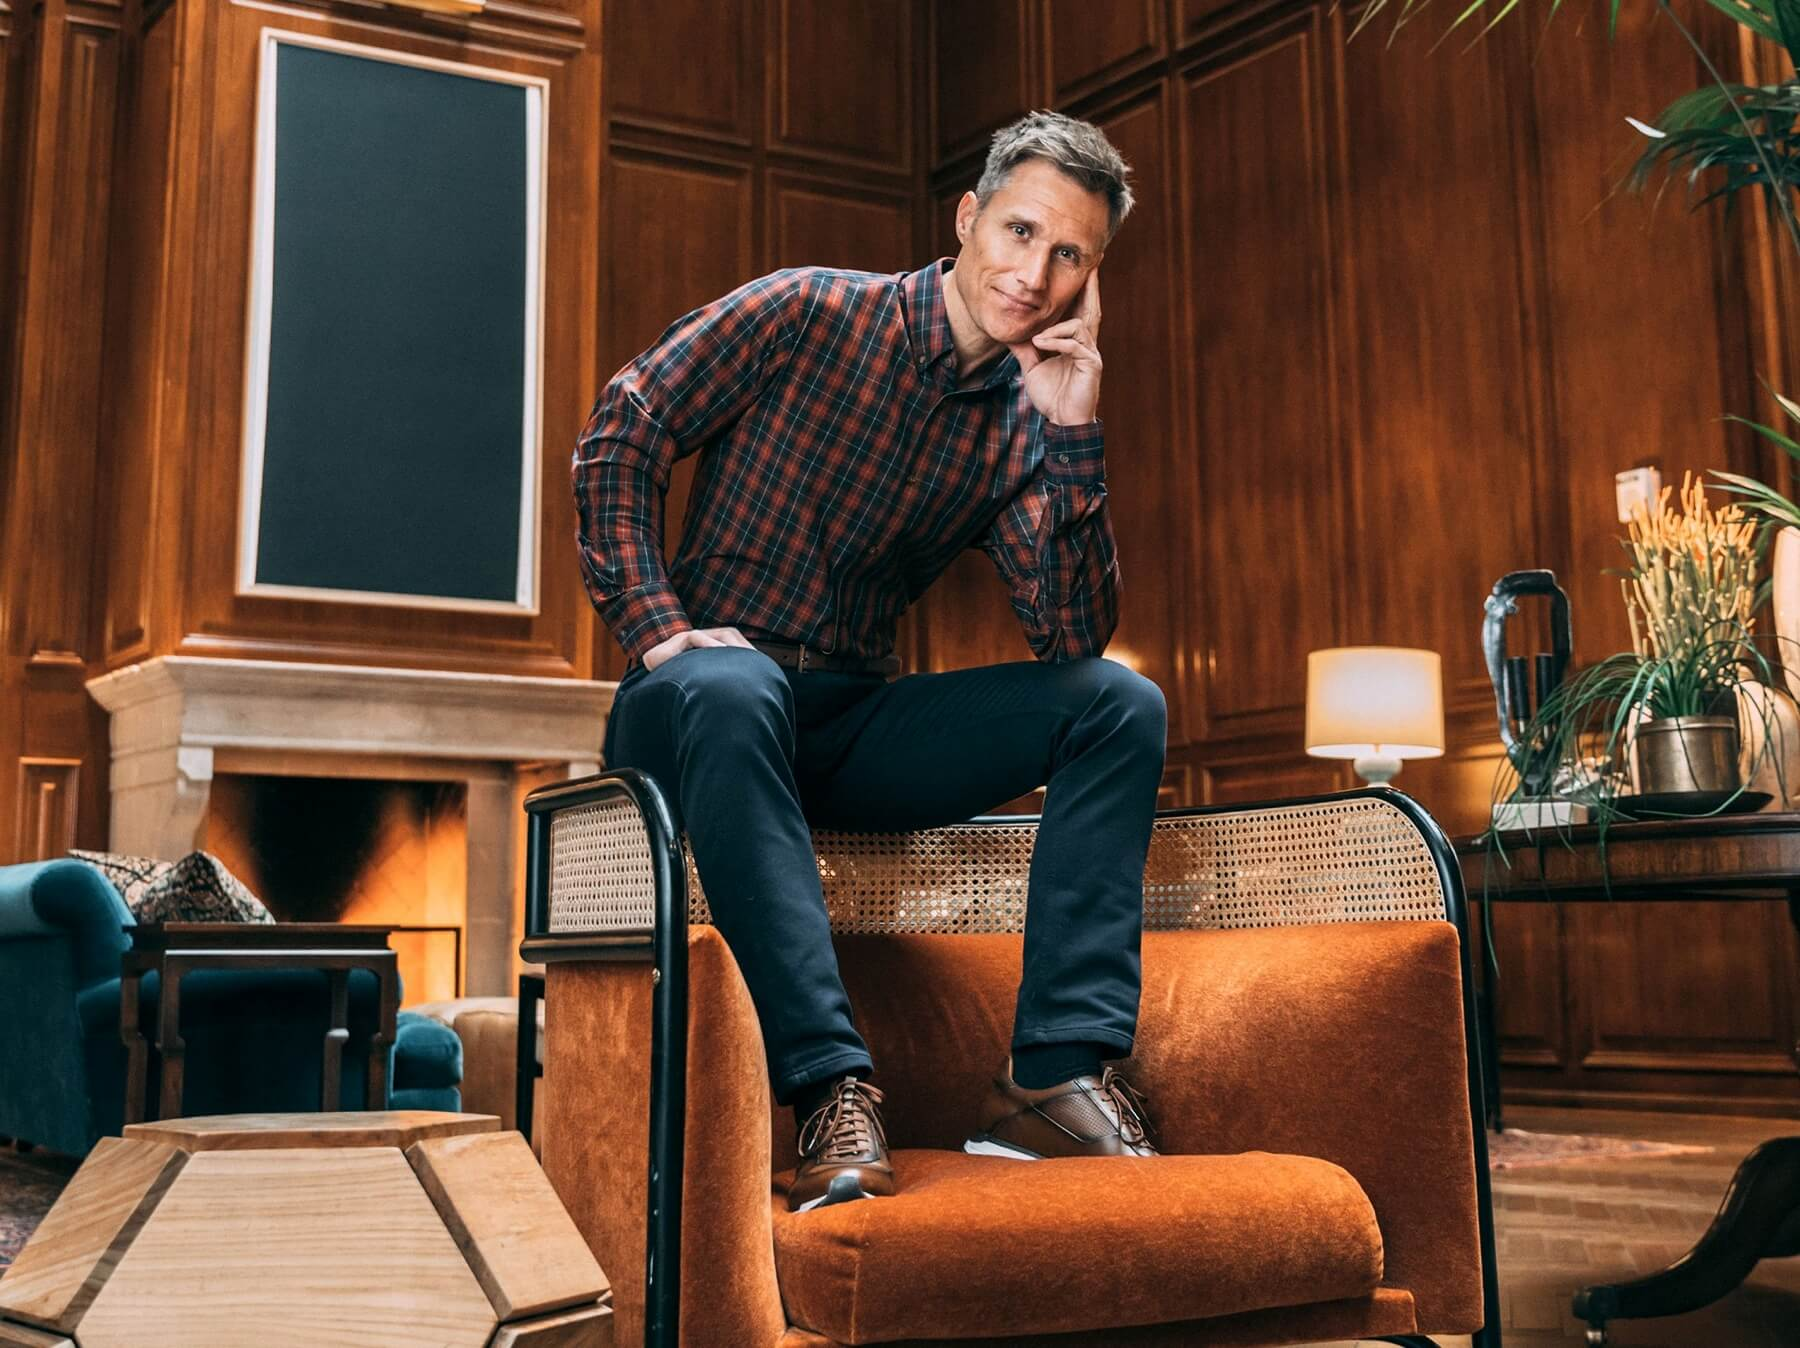 Mizzen+Main holiday gift guide for men